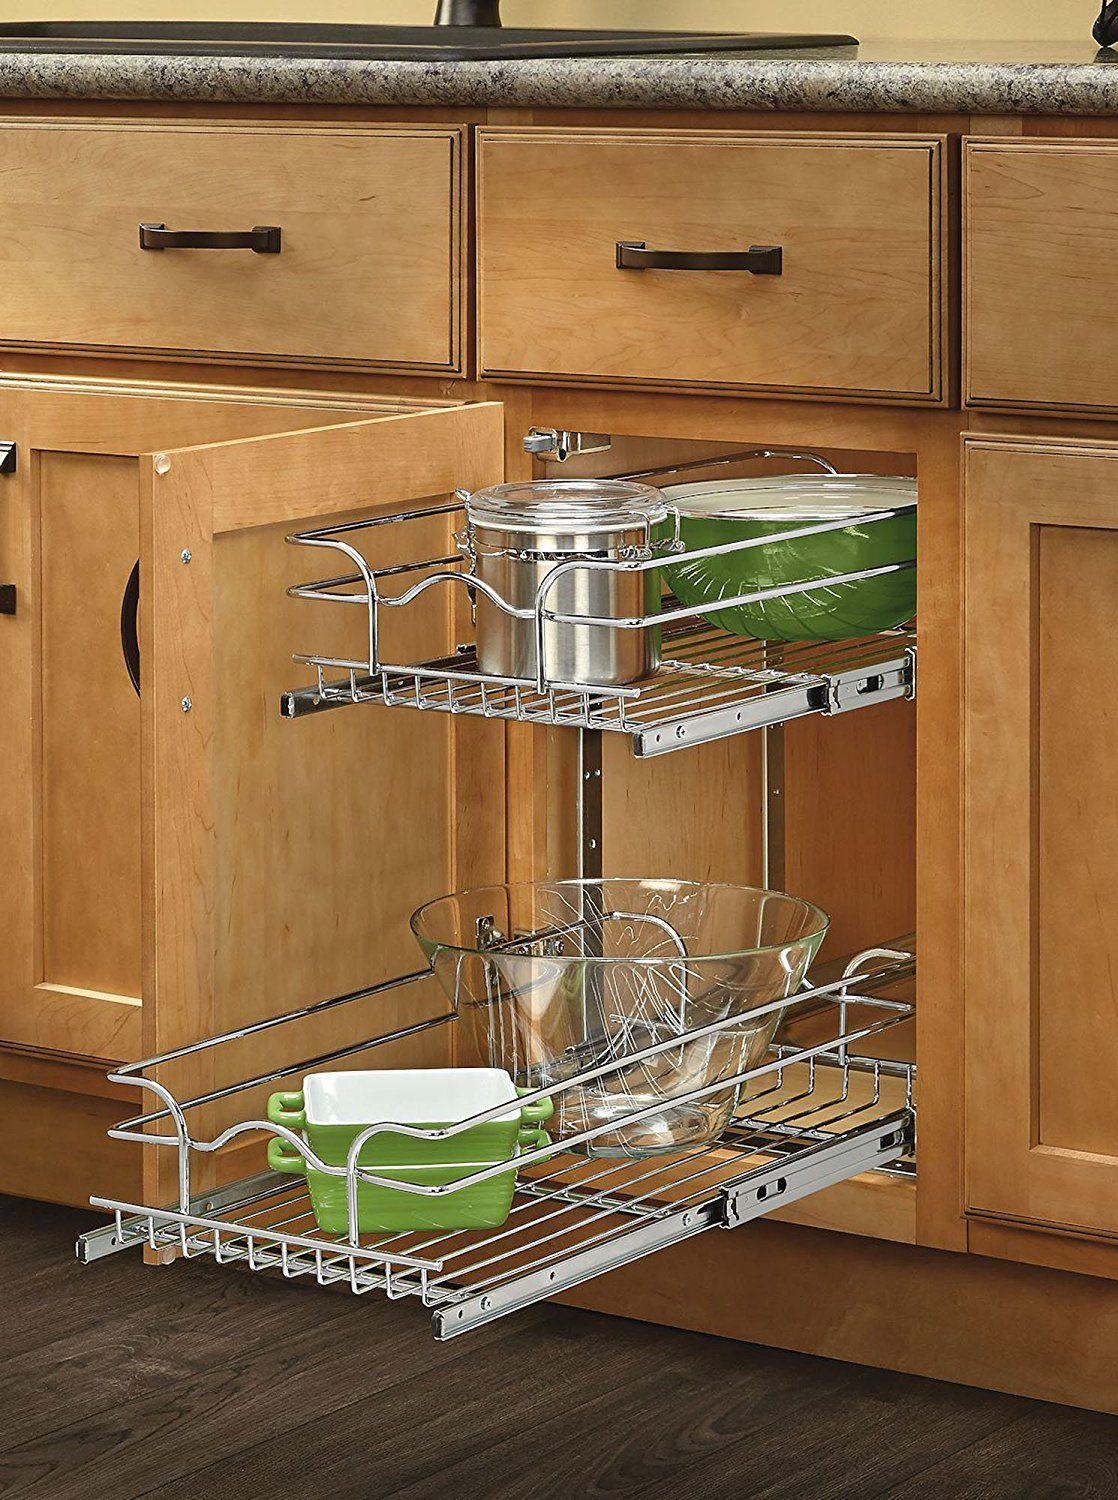 Delightful Rev A Shelf Base Cabinet Pullout 2 Tier Wire Basket Reduced Depth Sink U0026  Base Accessories, 9 W X 18 D Inches